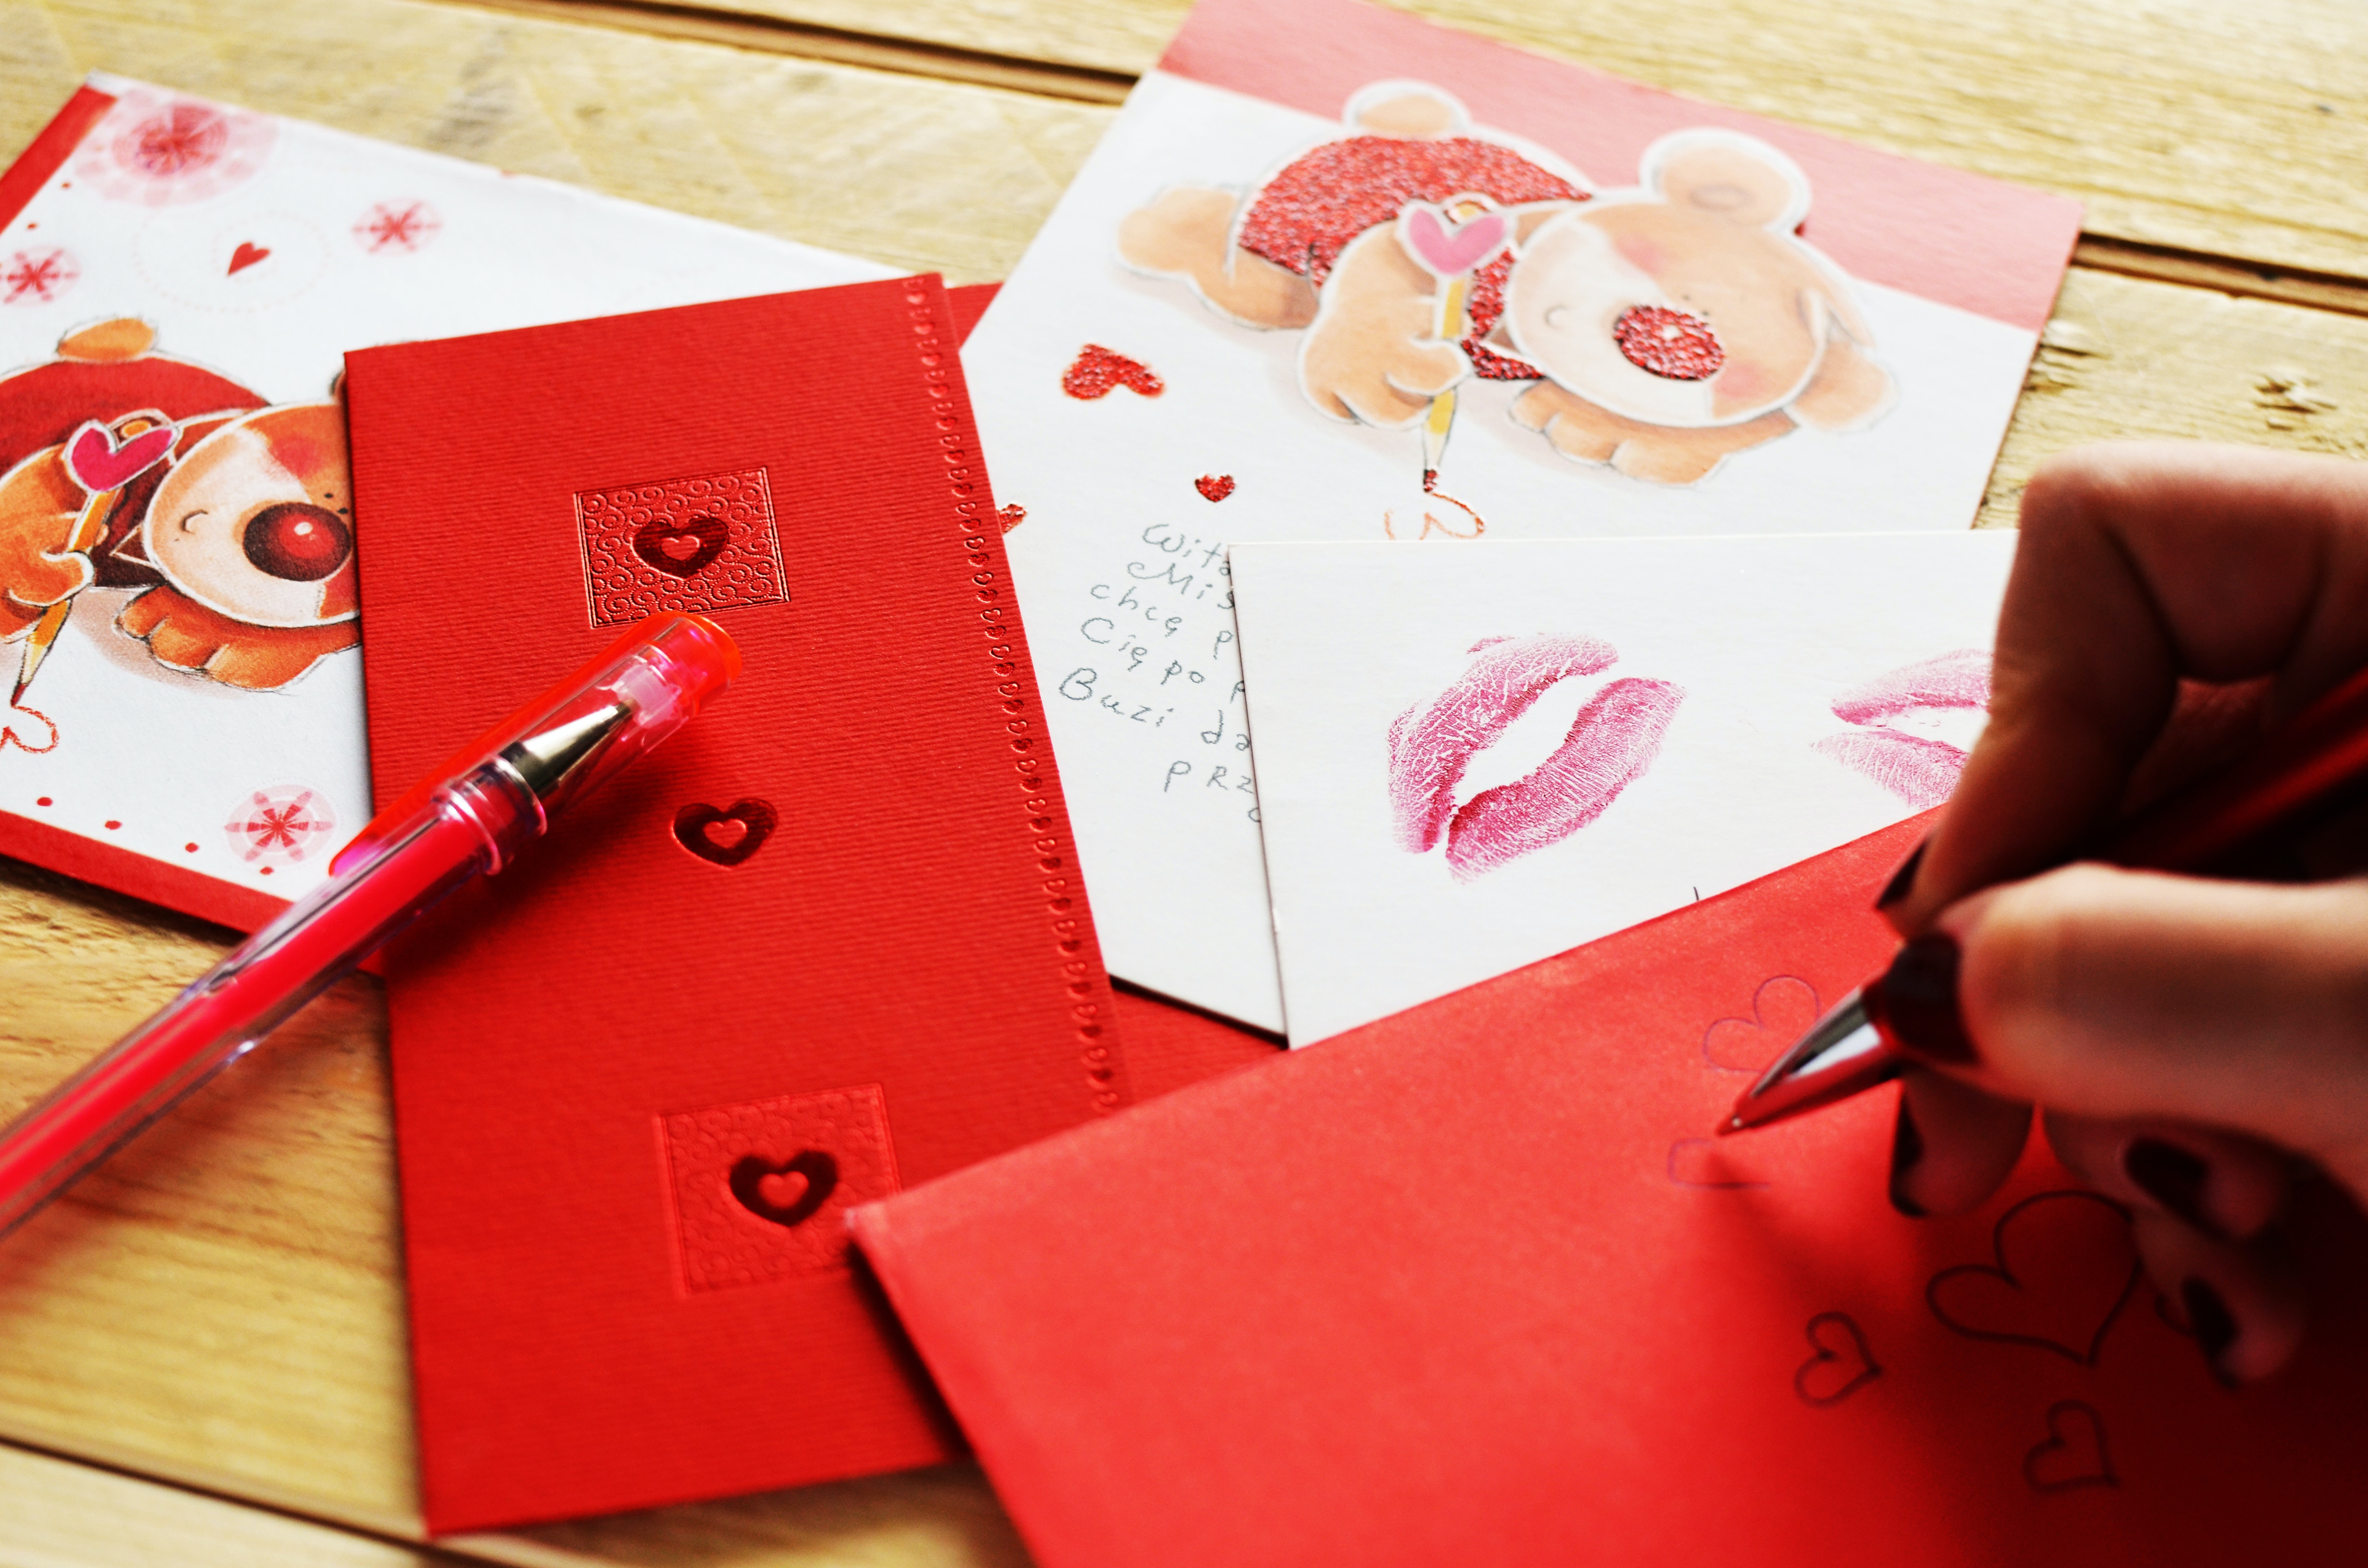 Free stock photo of christmas gift handwriting free download negle Images